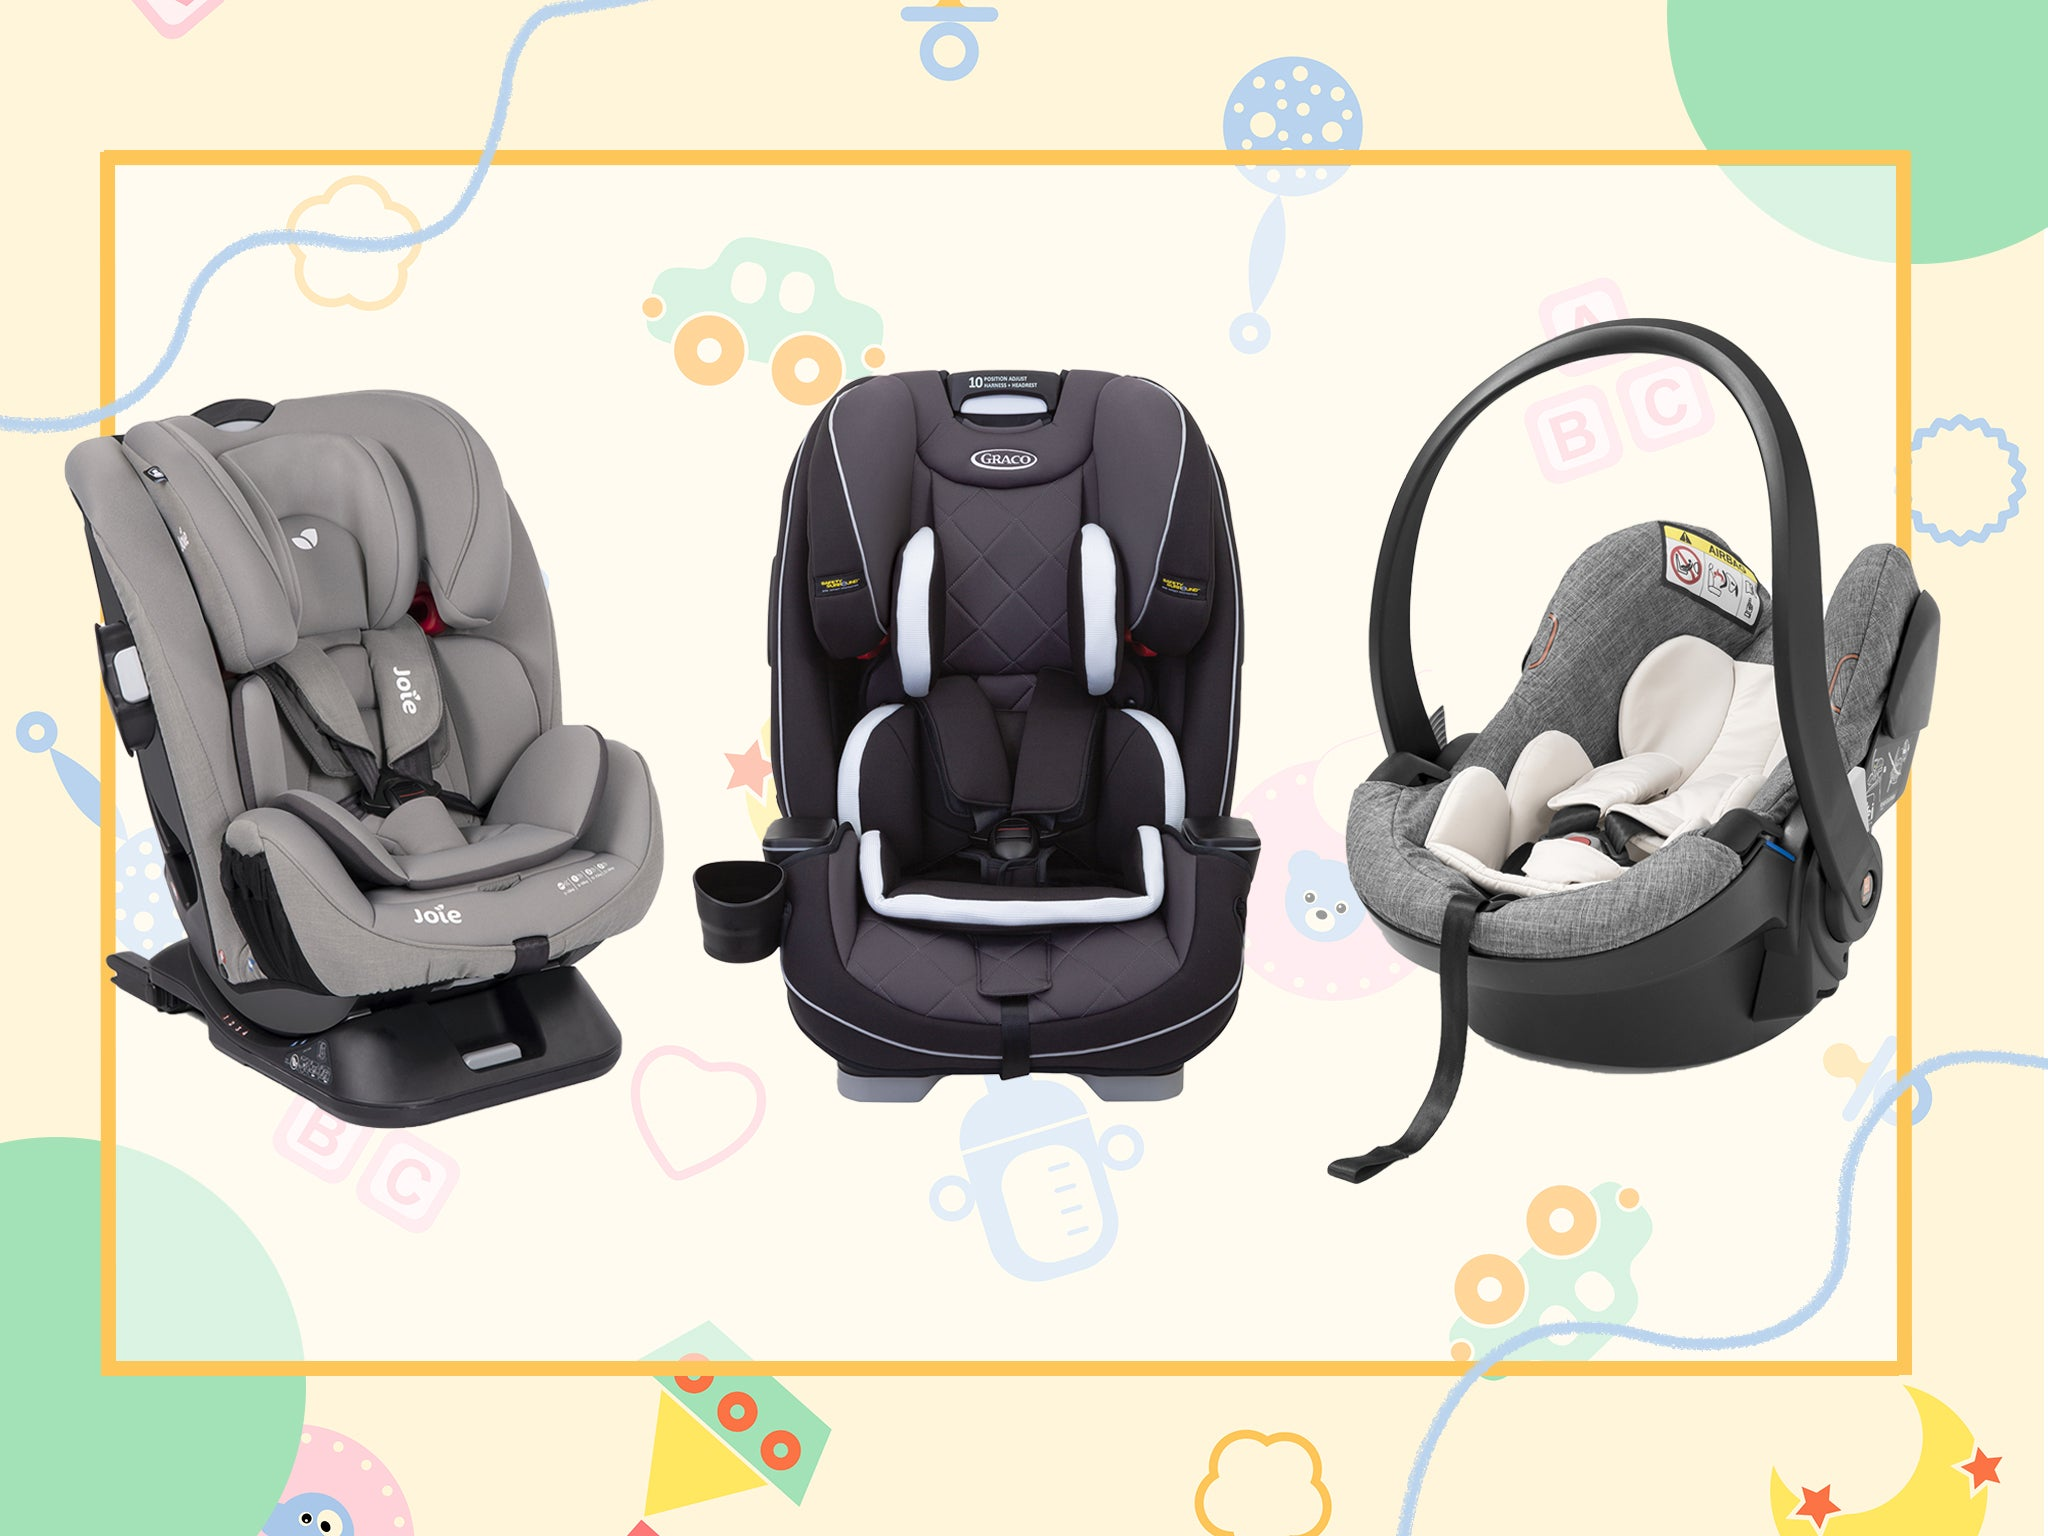 Best Car Seat 2020 Keep Your Child Safe And Secure In One Of These Carriers The Independent